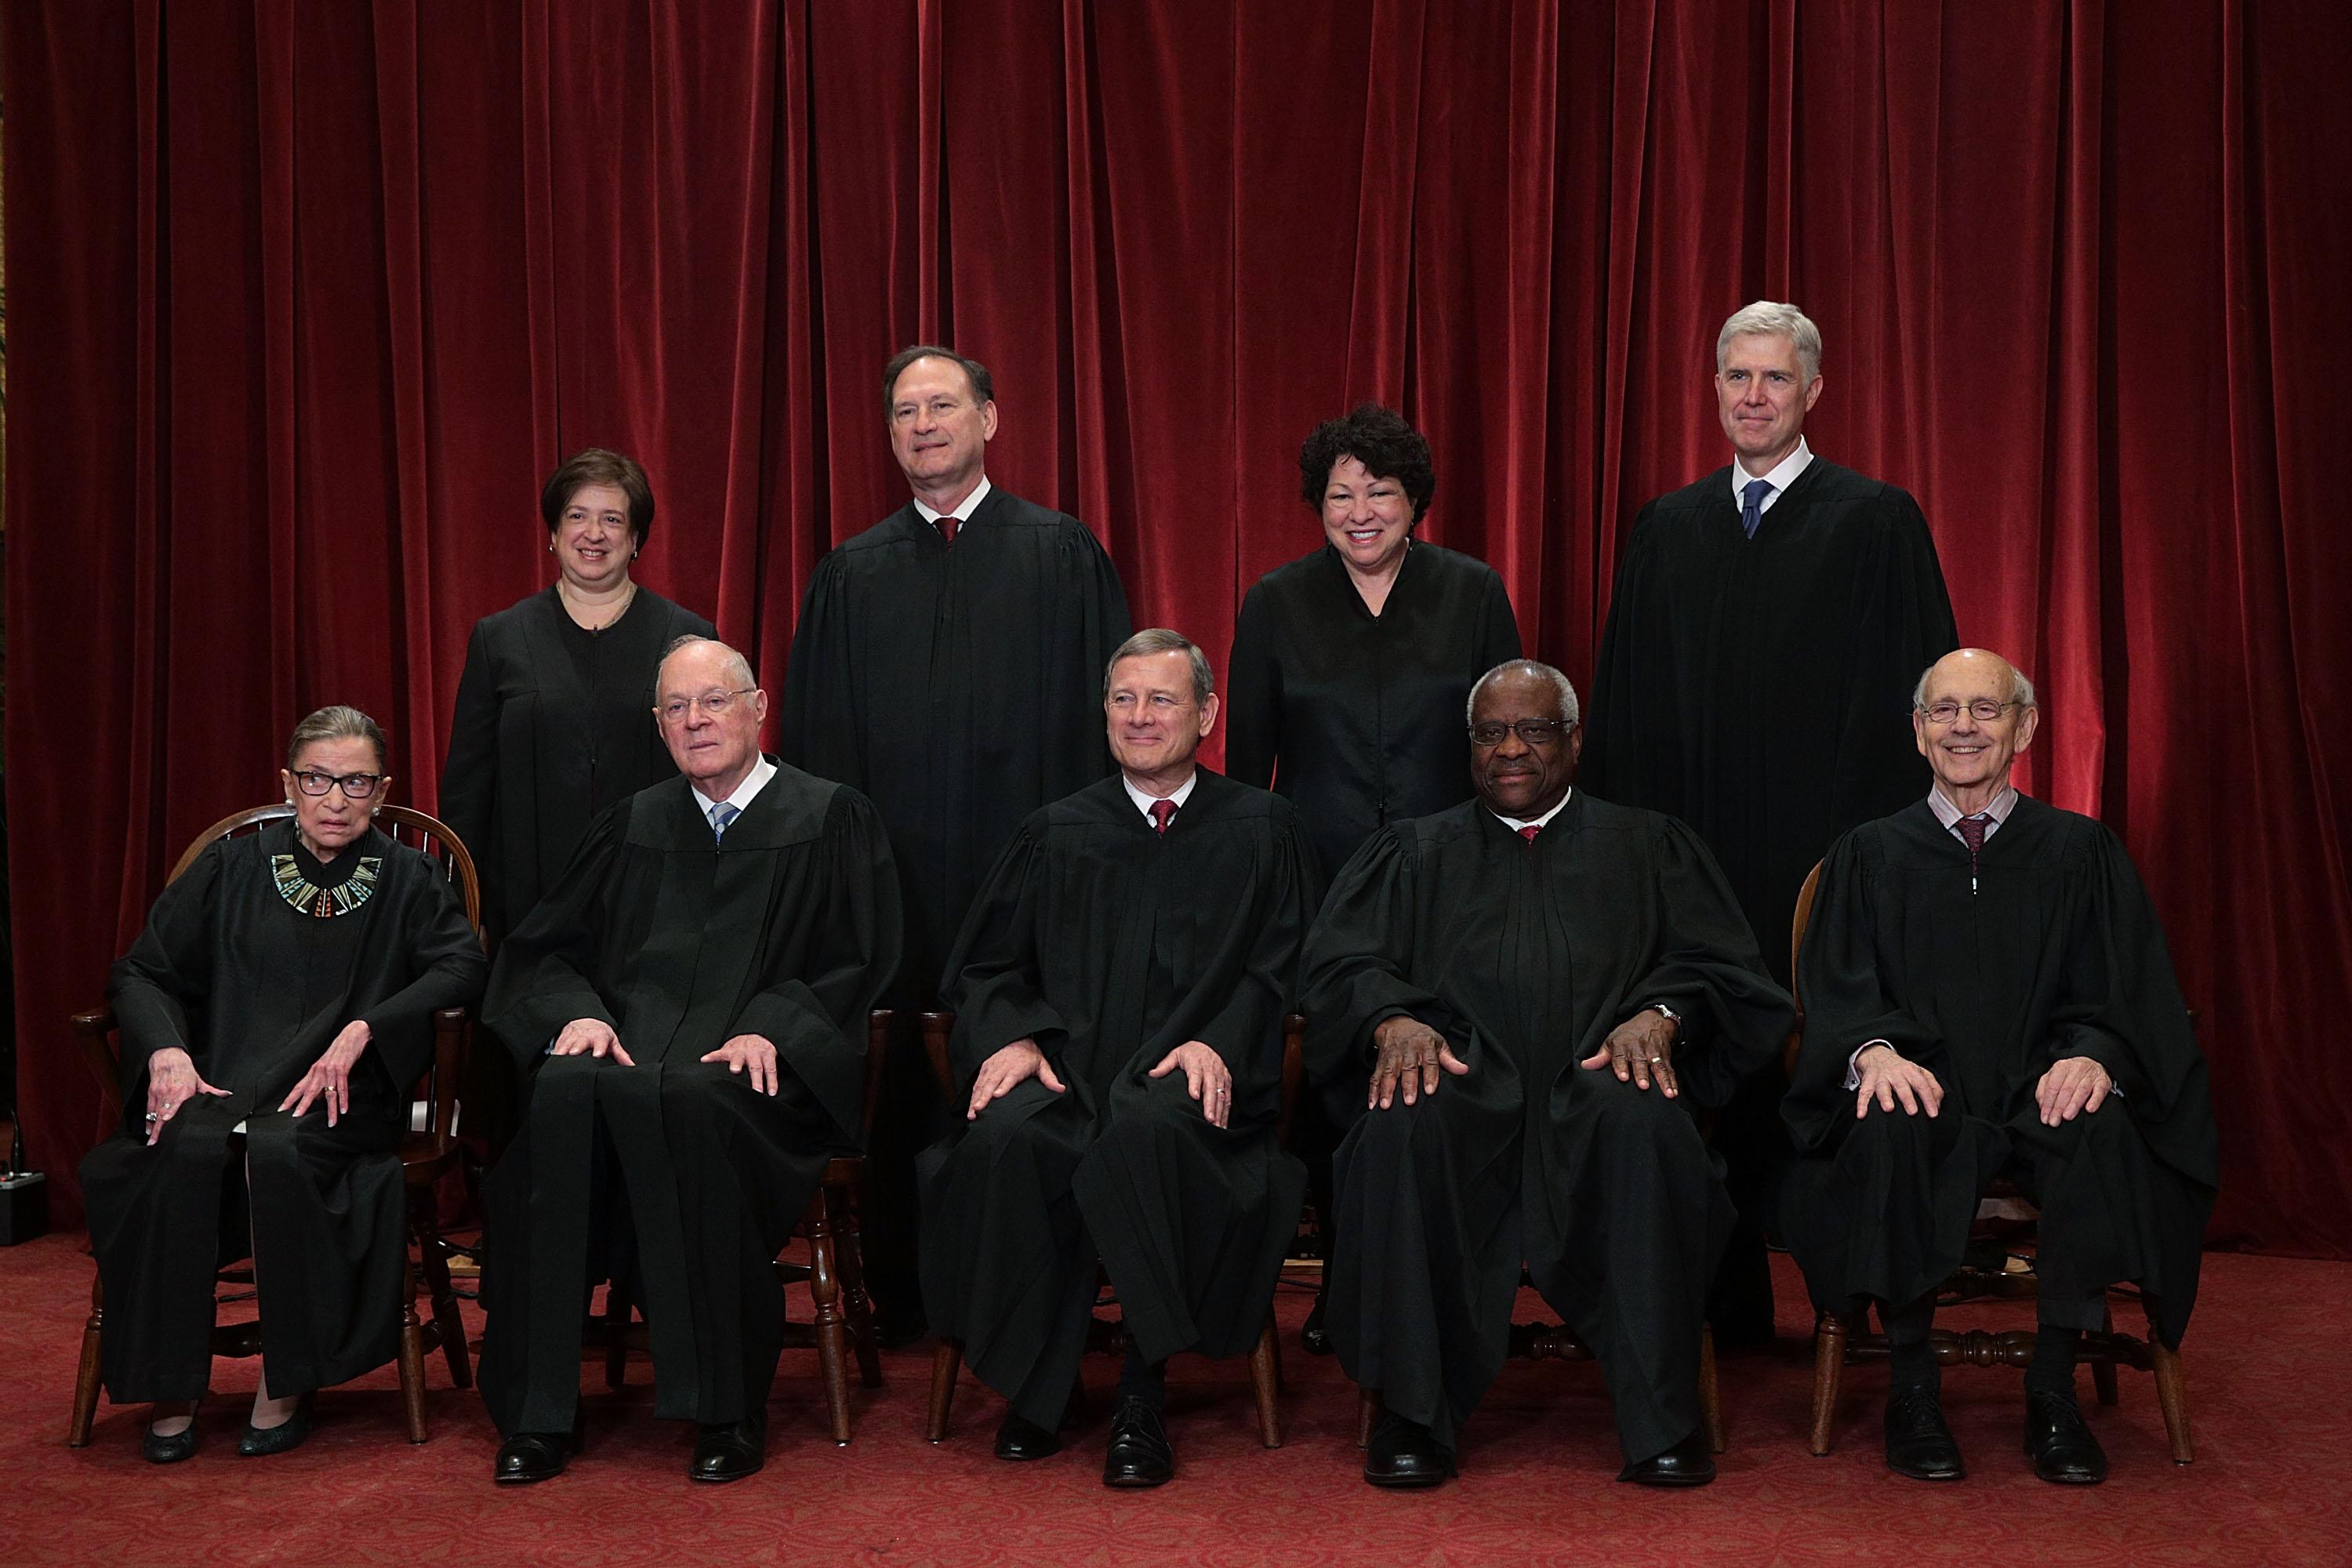 Supreme Court Justices, 2017